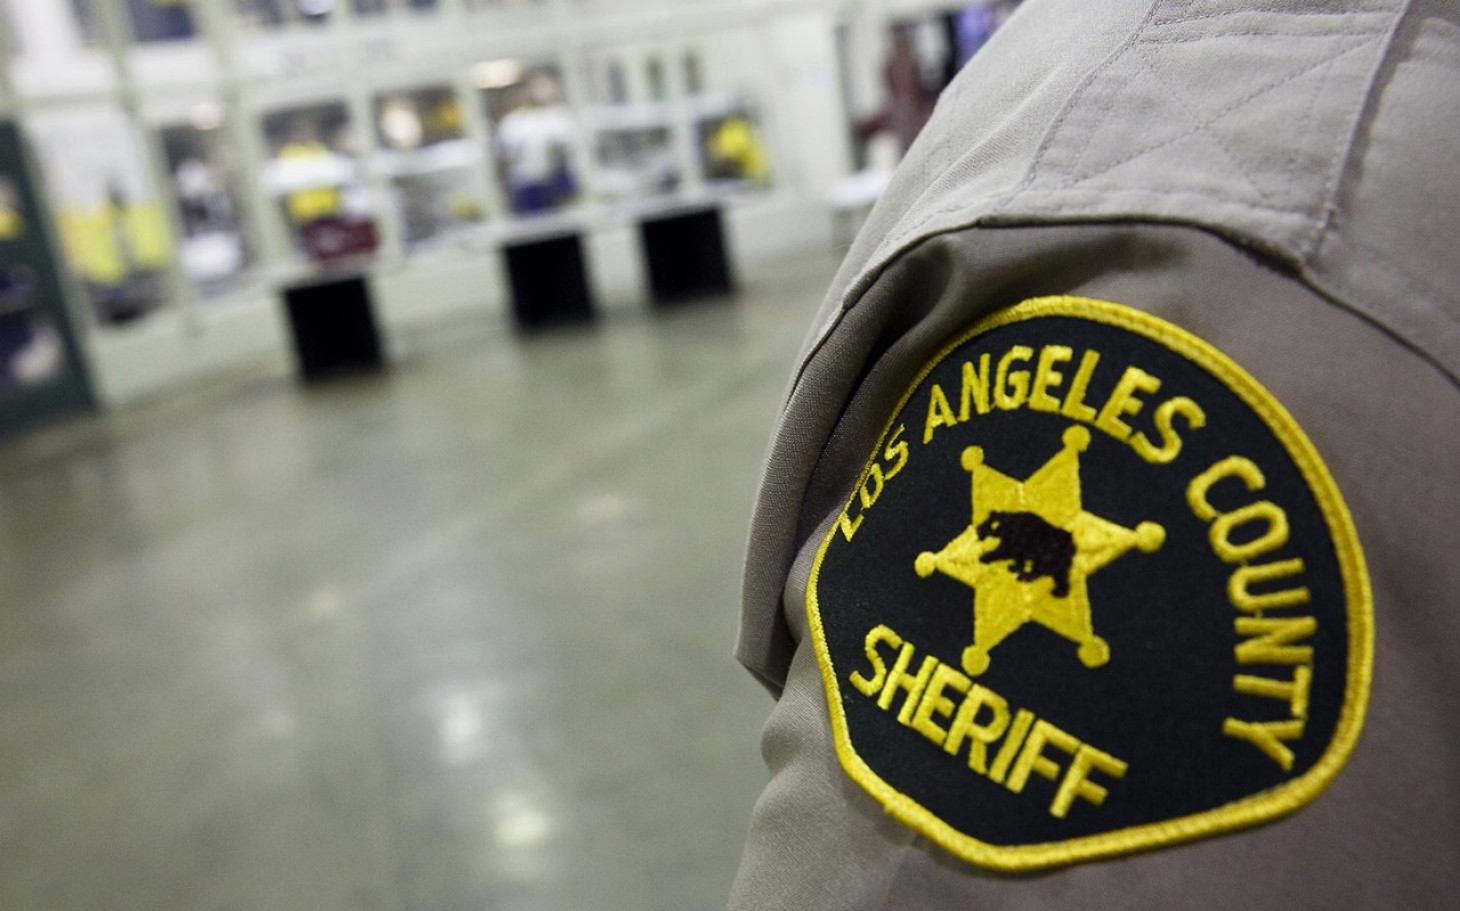 corruption seeps through the los angeles police department Connie dial is 27-year veteran of the los angeles police department prior to joining the force in 1969, she worked as a journalist and a reporter/photographer for a chain of newspapers in the san gabriel valley.